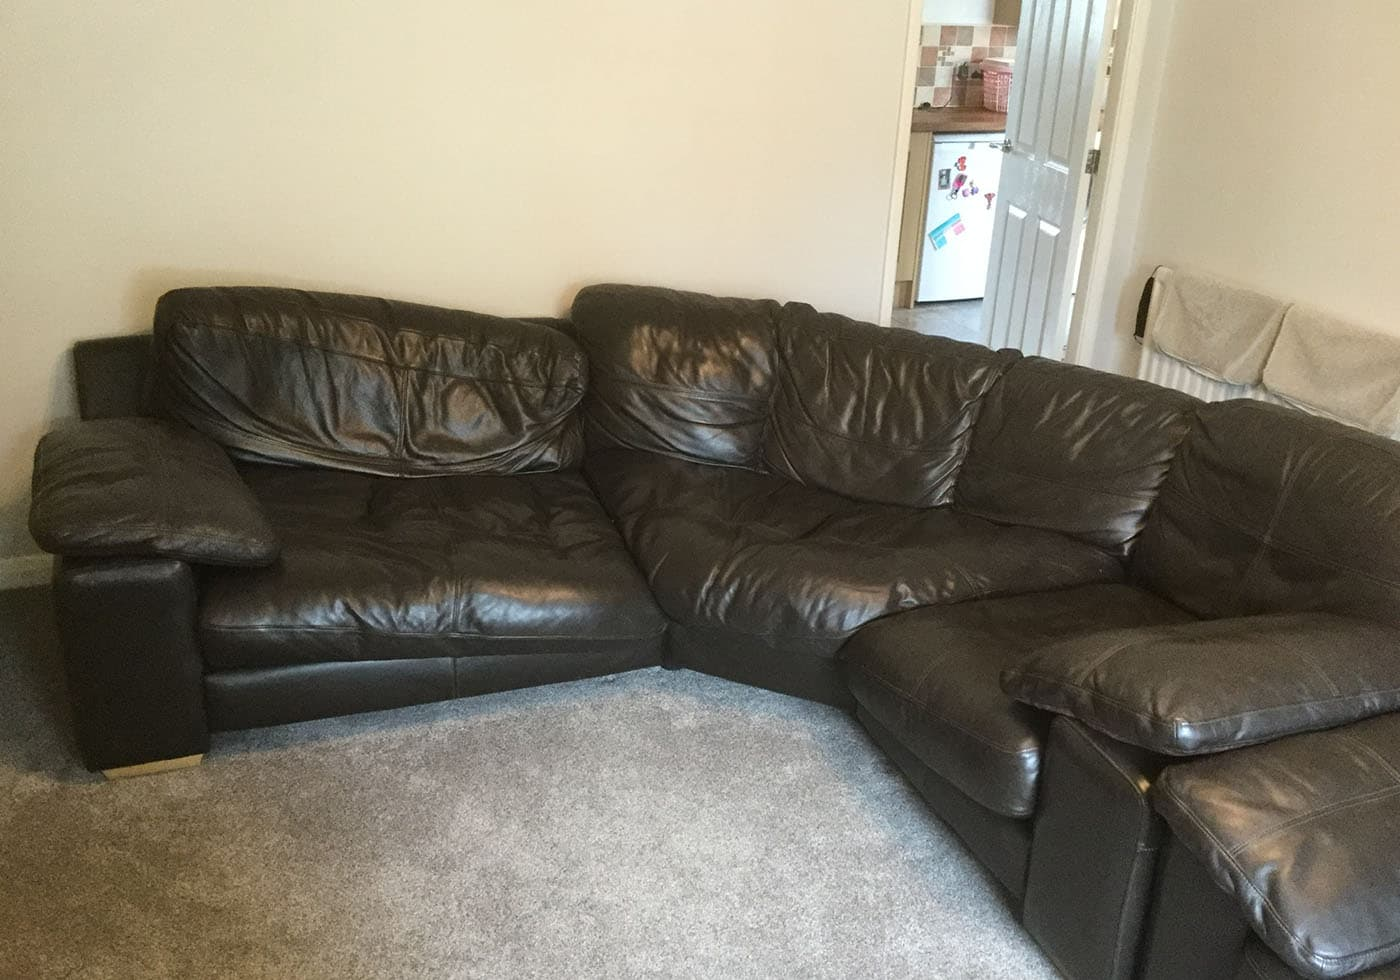 black leather sofa cushions soft and frame broken